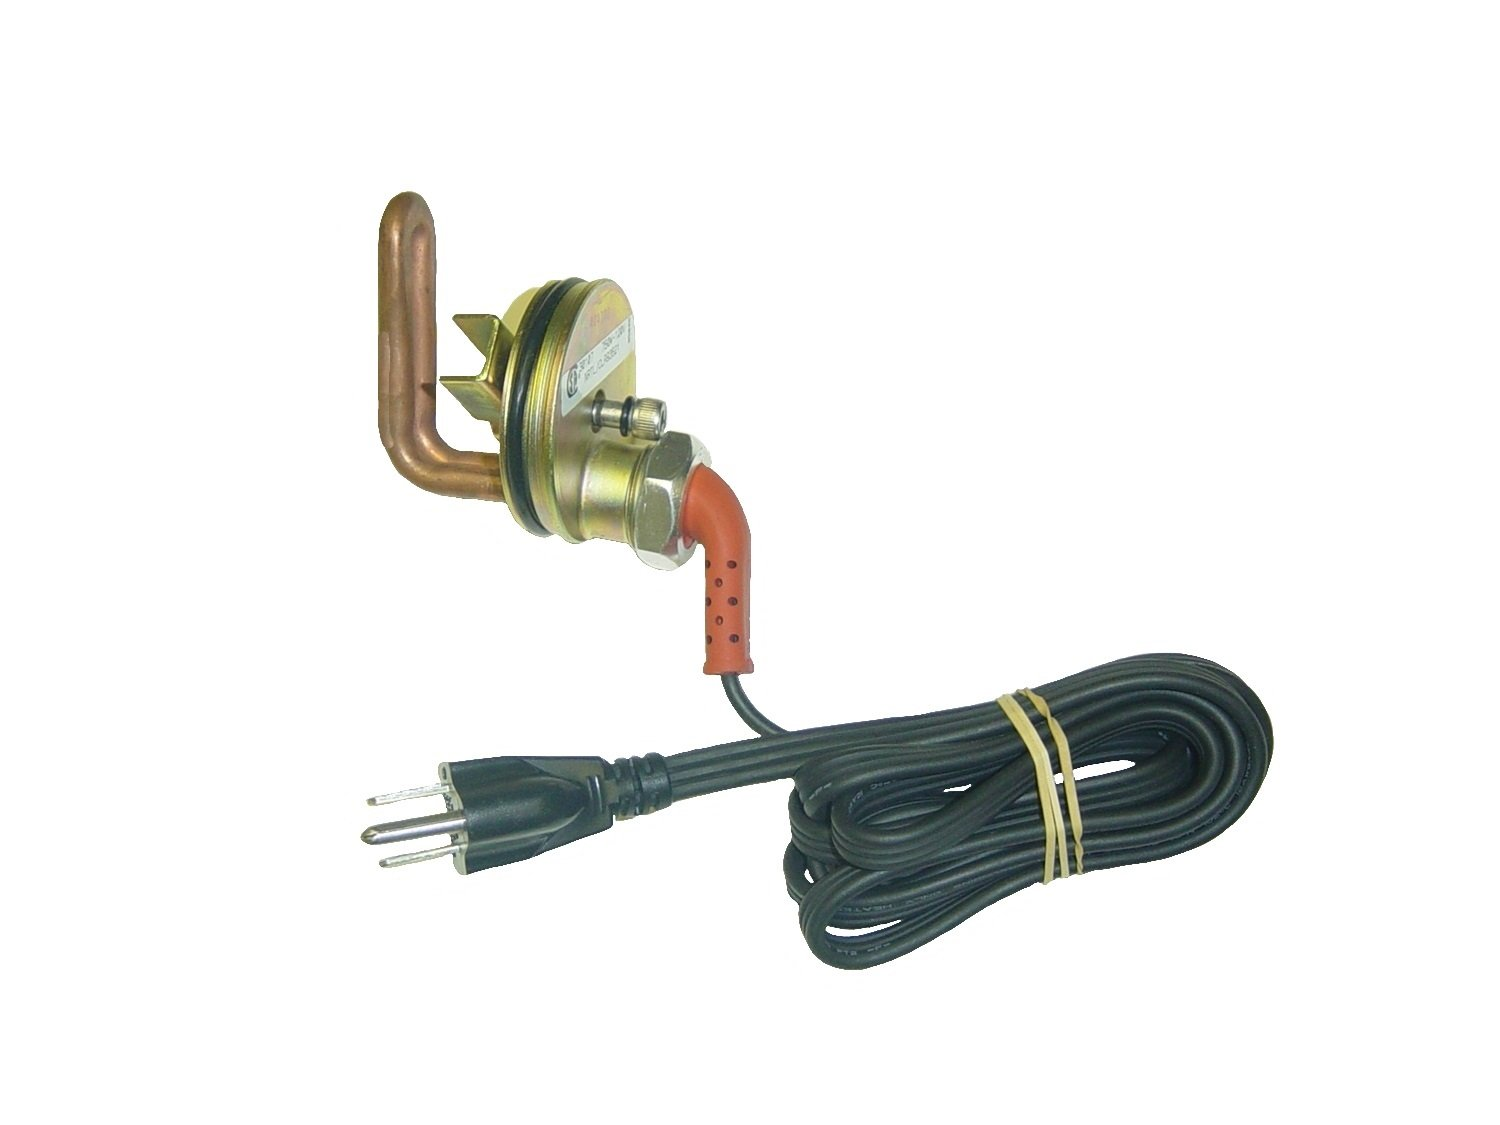 Kat's 30107 750 Watt 58mm Frost Plug Heater